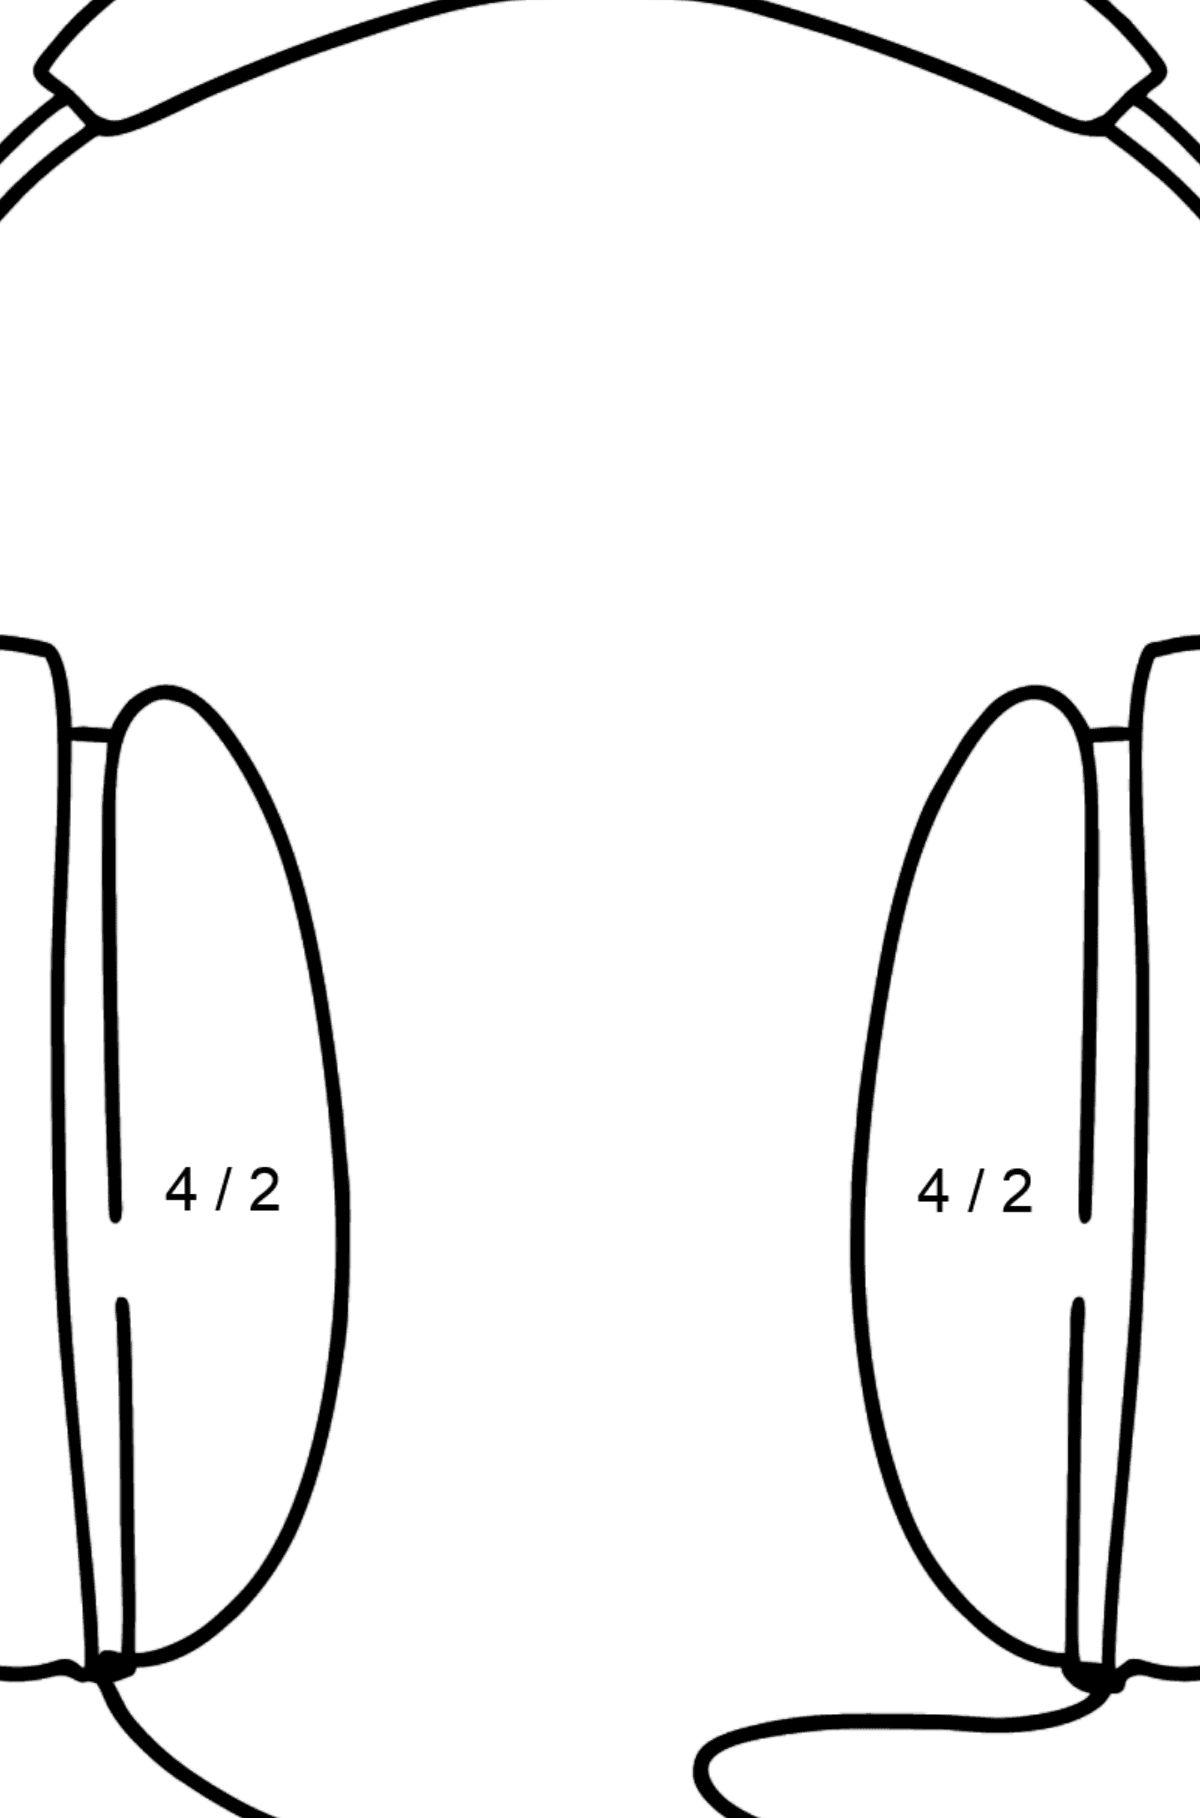 Headphones coloring page - Math Coloring - Division for Kids